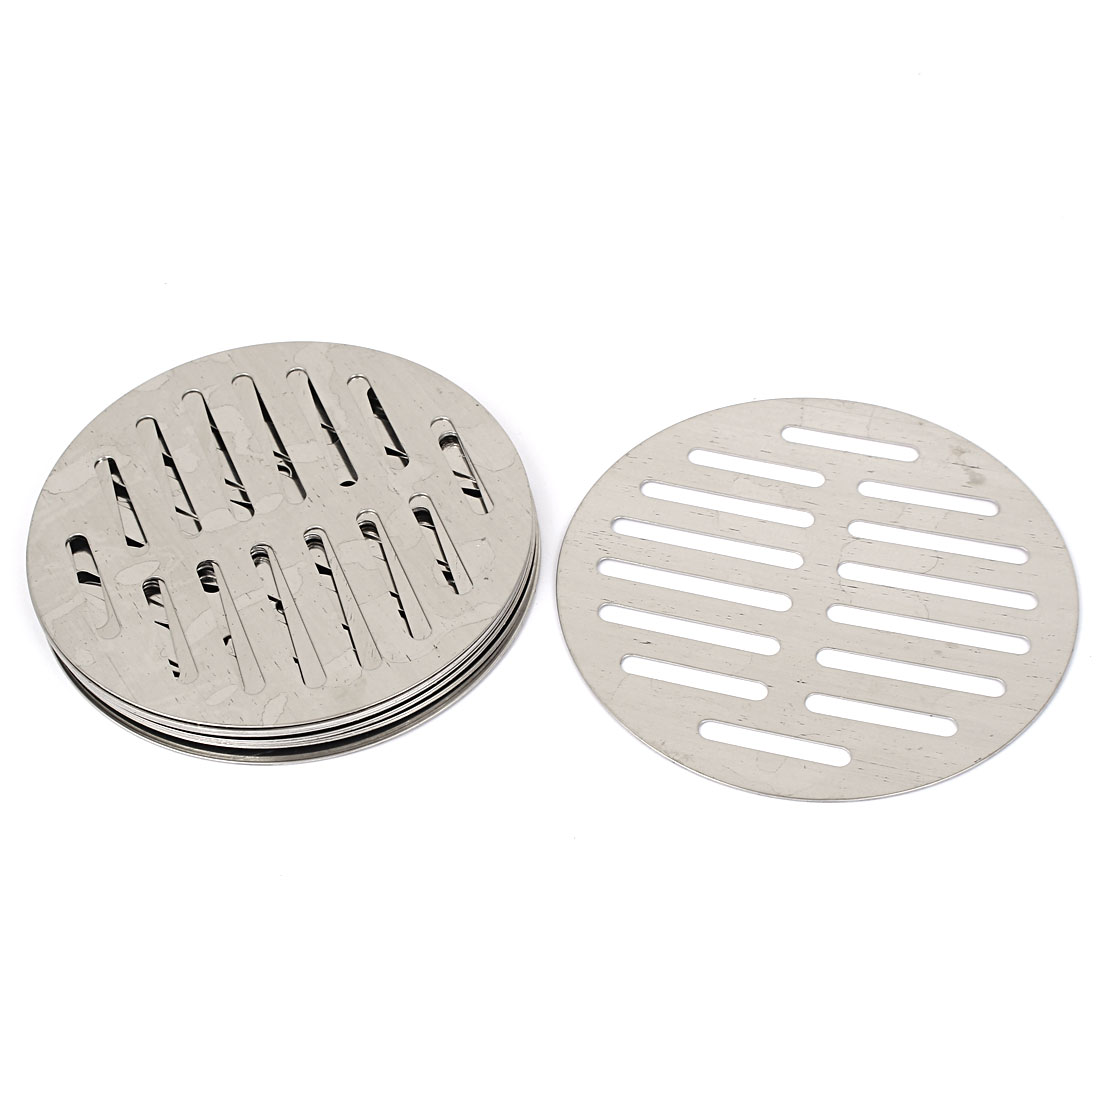 Stainless Steel Round Sink Floor Drain Strainer Cover 5